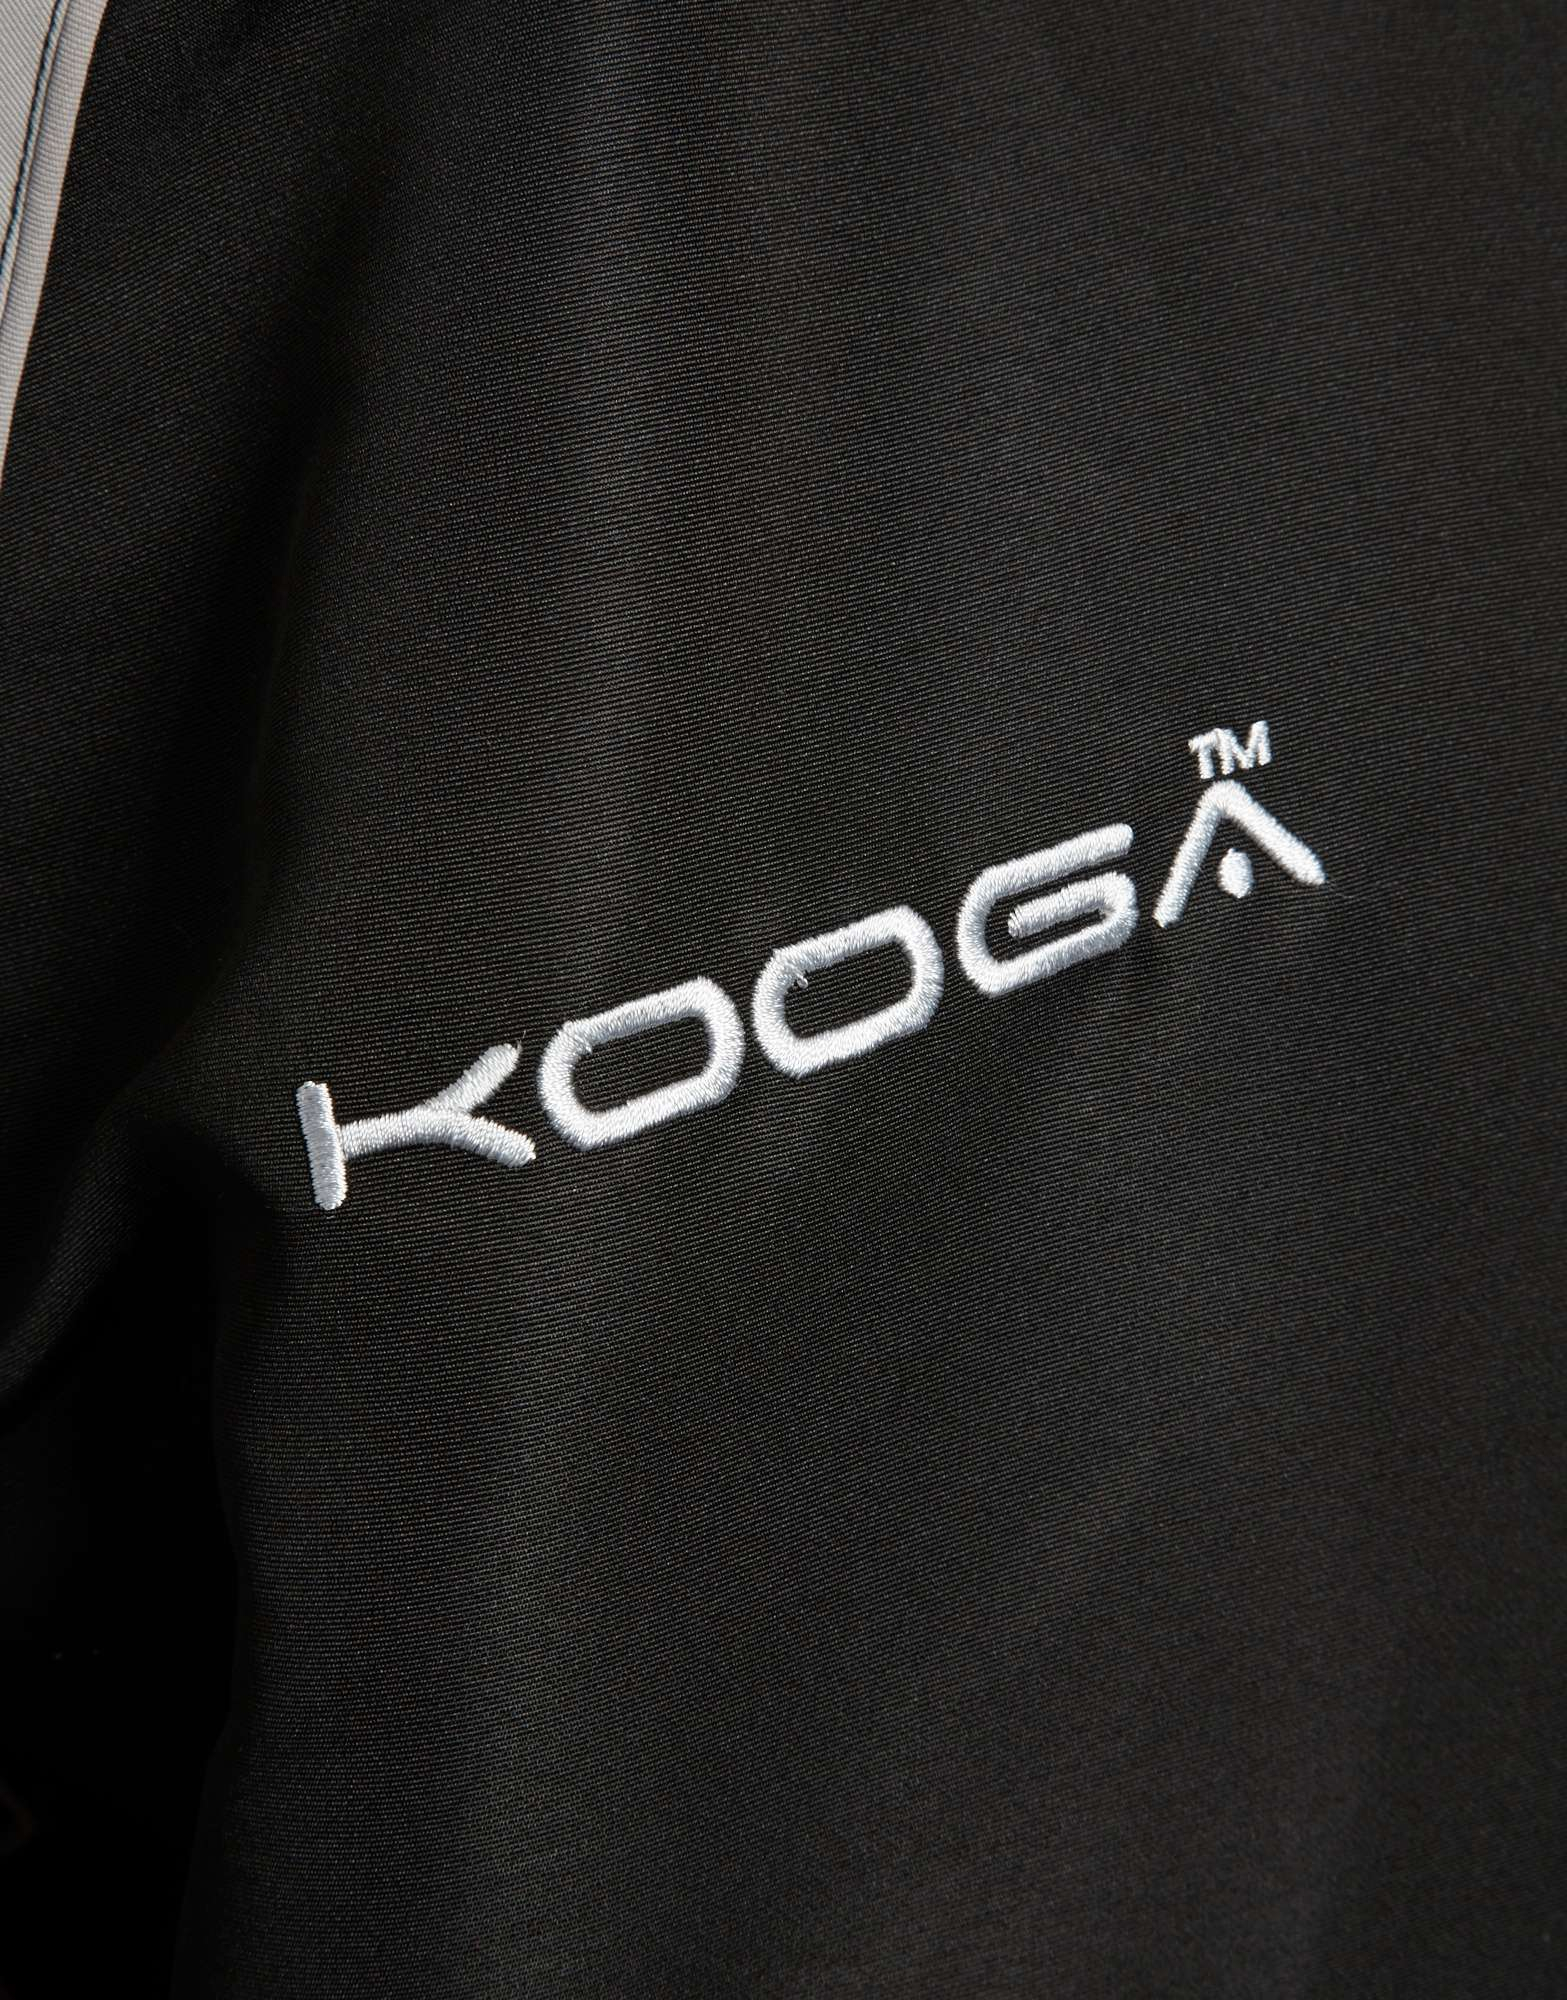 KooGa Vortex Top